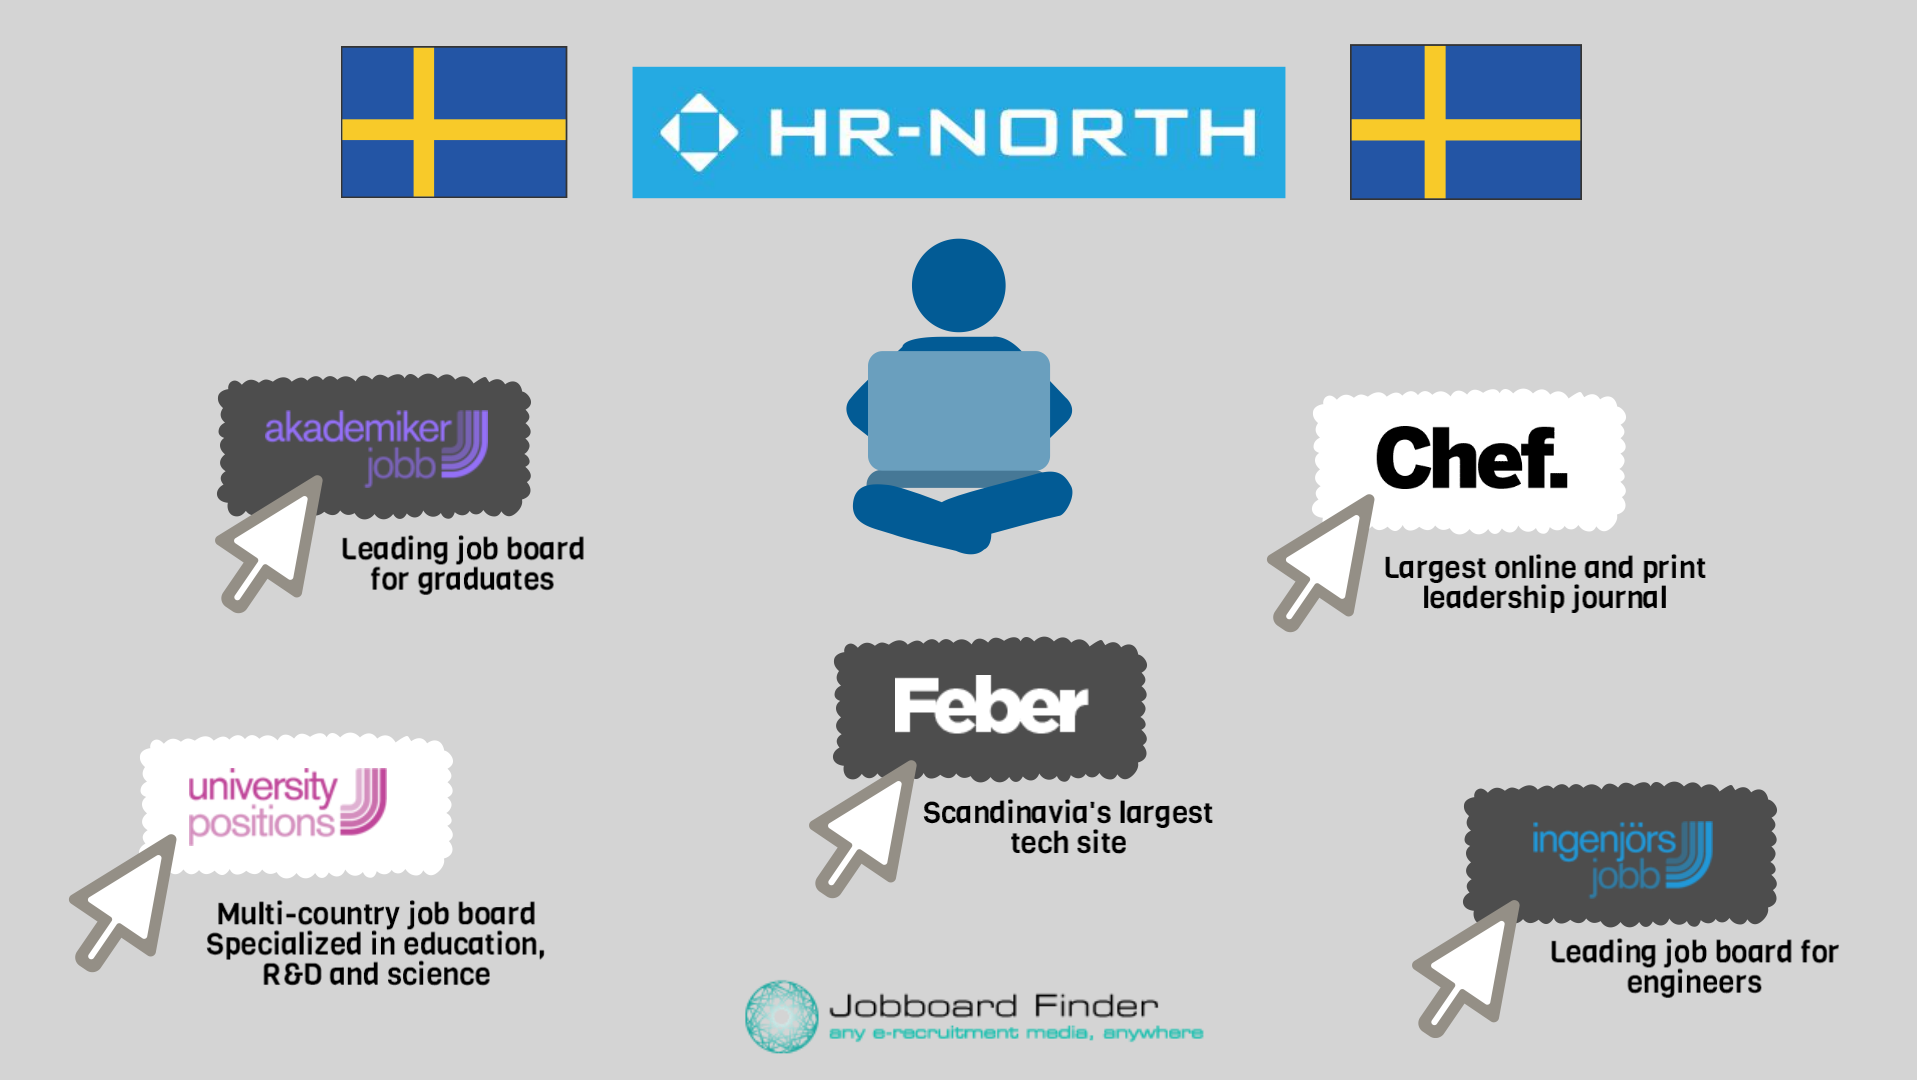 interview hr north sweden ab a major player in the swedish hr north job boards